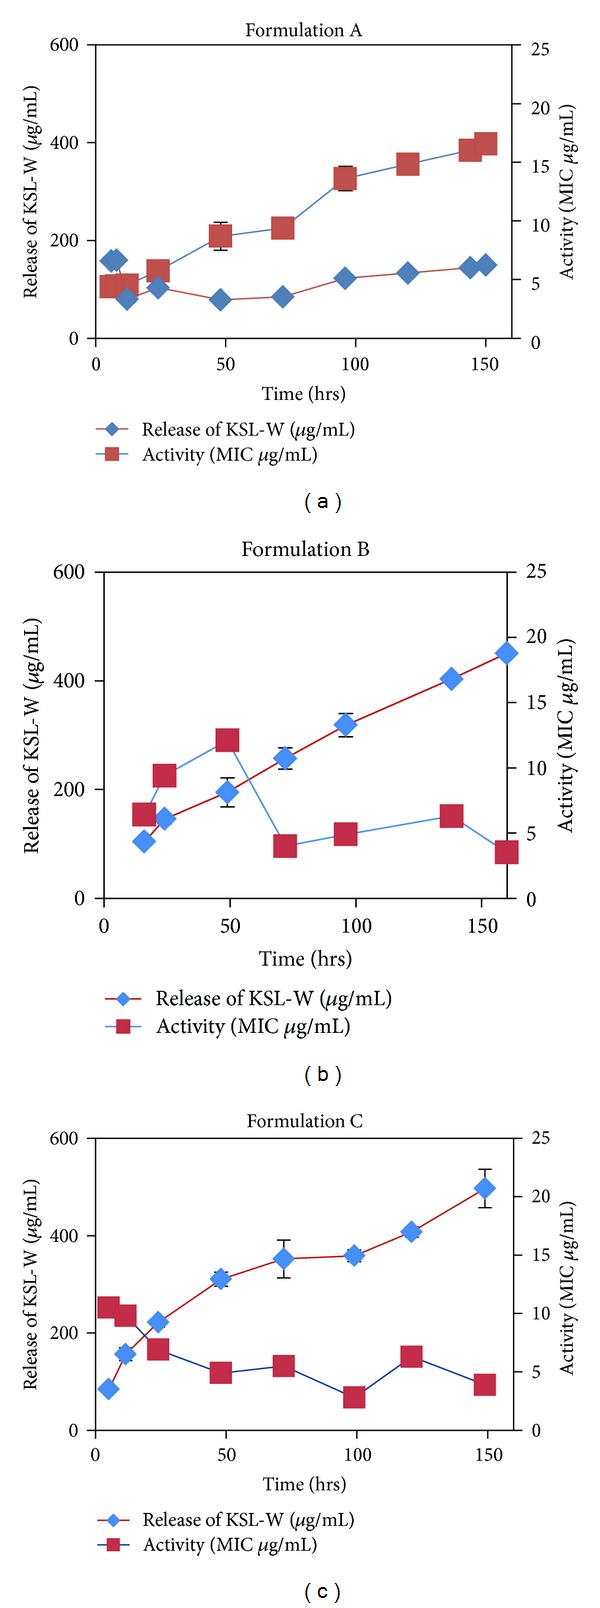 Bactericidal activity of fractions collected from KSL-W PLGA microsphere formulation release using the broth microdilution method. The MIC of KSL-W peptide alone against S. epidermidis was 6.25 μ g/mL.